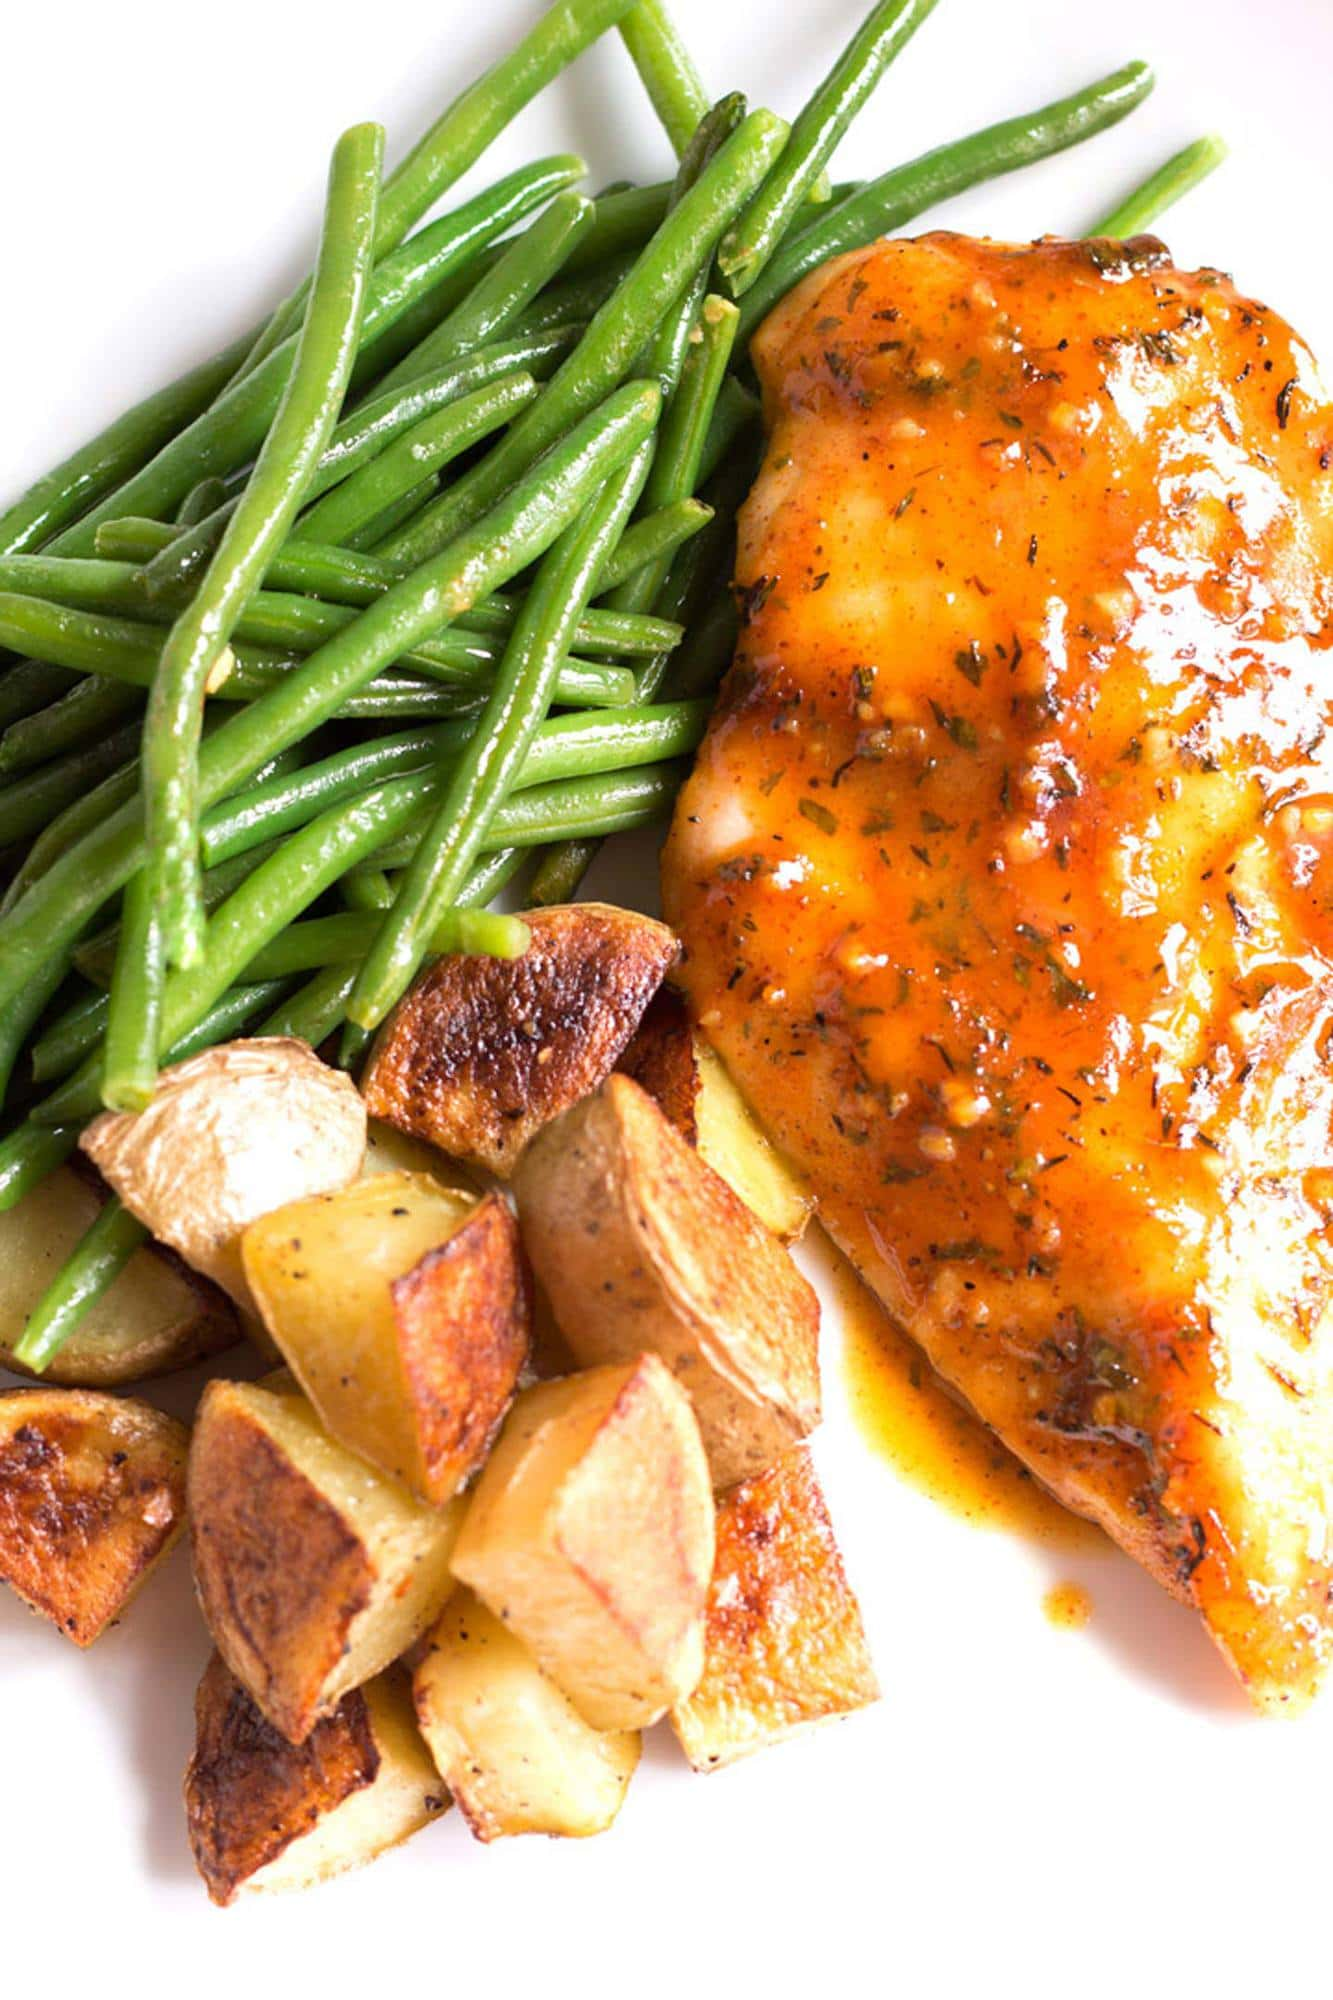 Honey mustard chicken, roasted potatoes, and green beans on a plate.